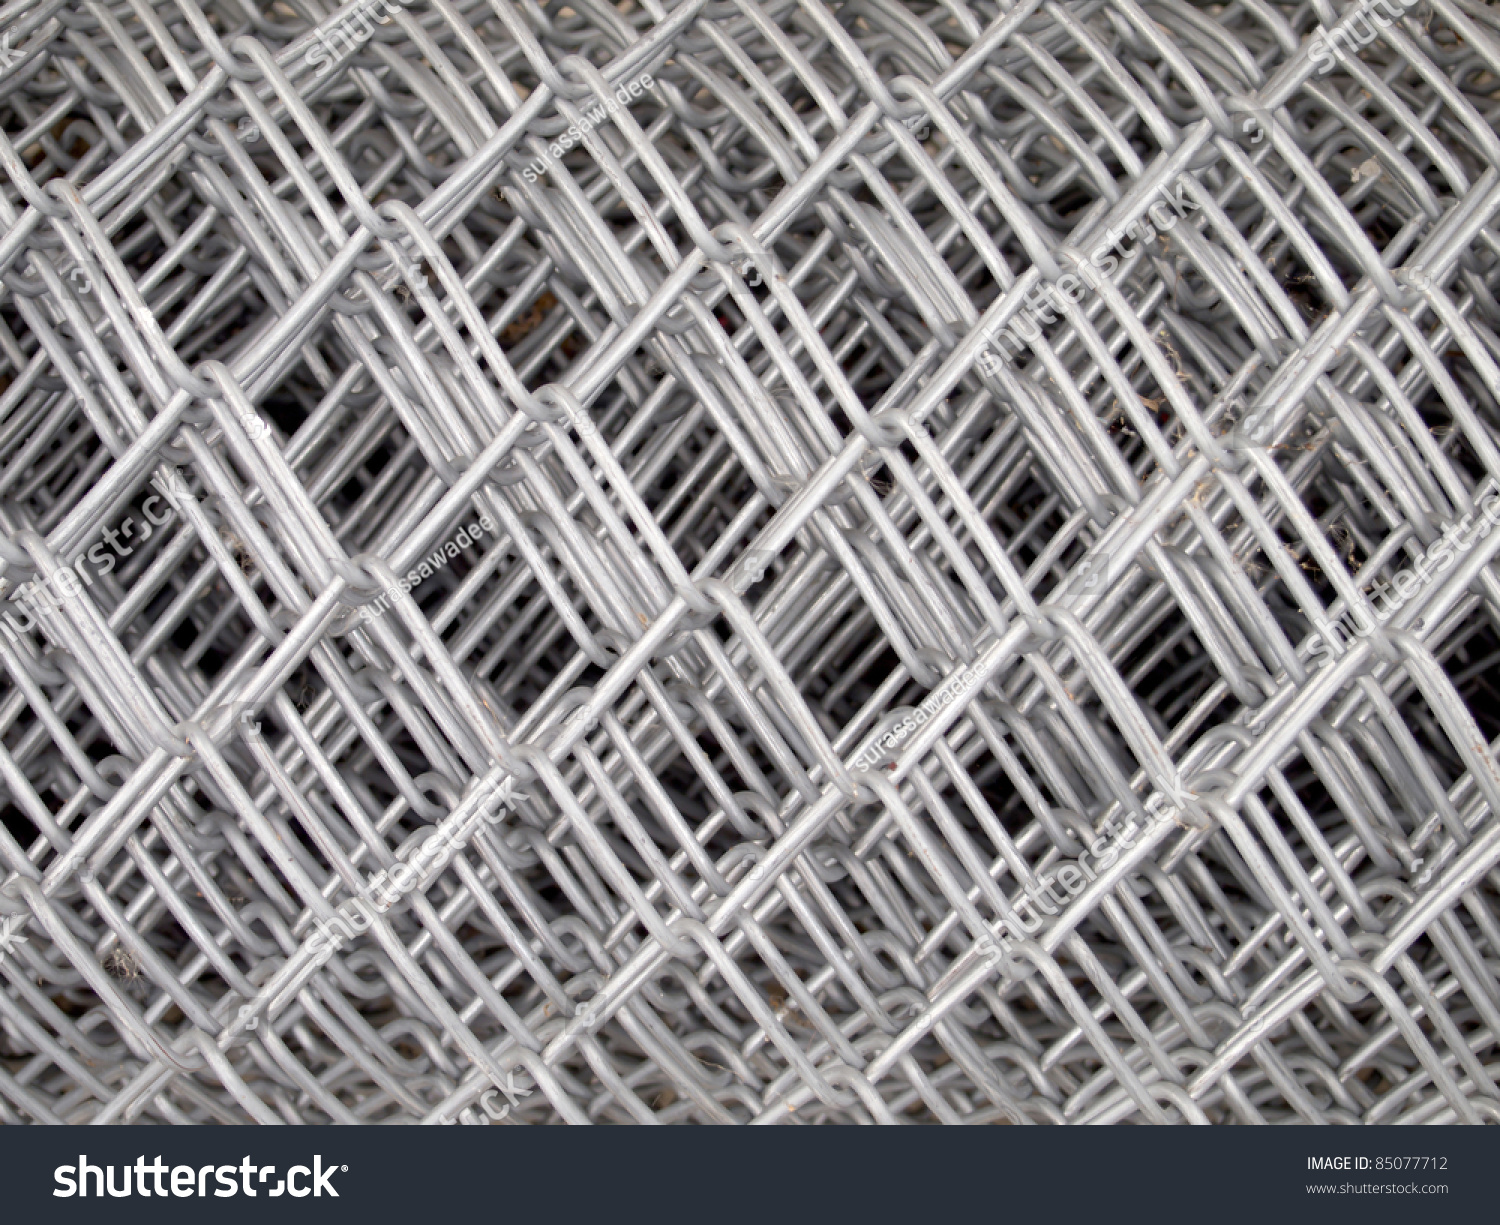 Iron wire fence texture | EZ Canvas